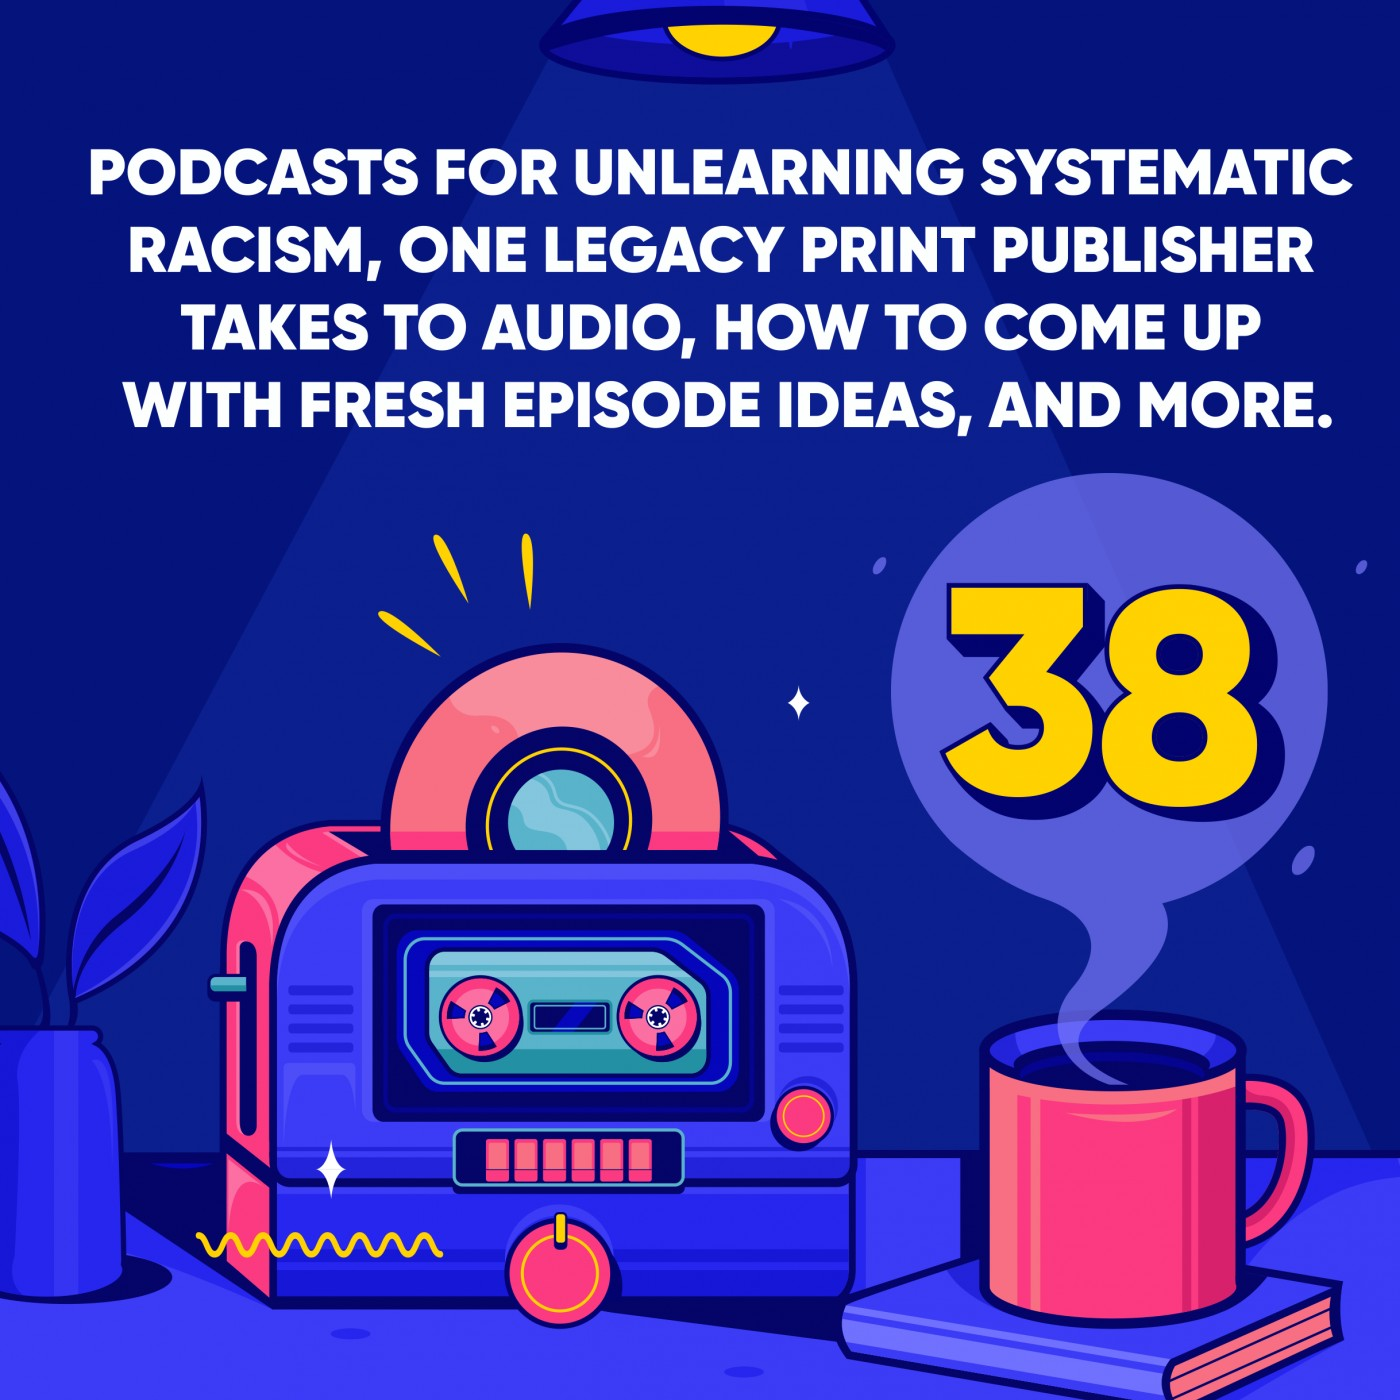 Podcasts for unlearning systematic racism, one legacy print publisher takes to audio, how to come up with fresh episode ideas, and more.